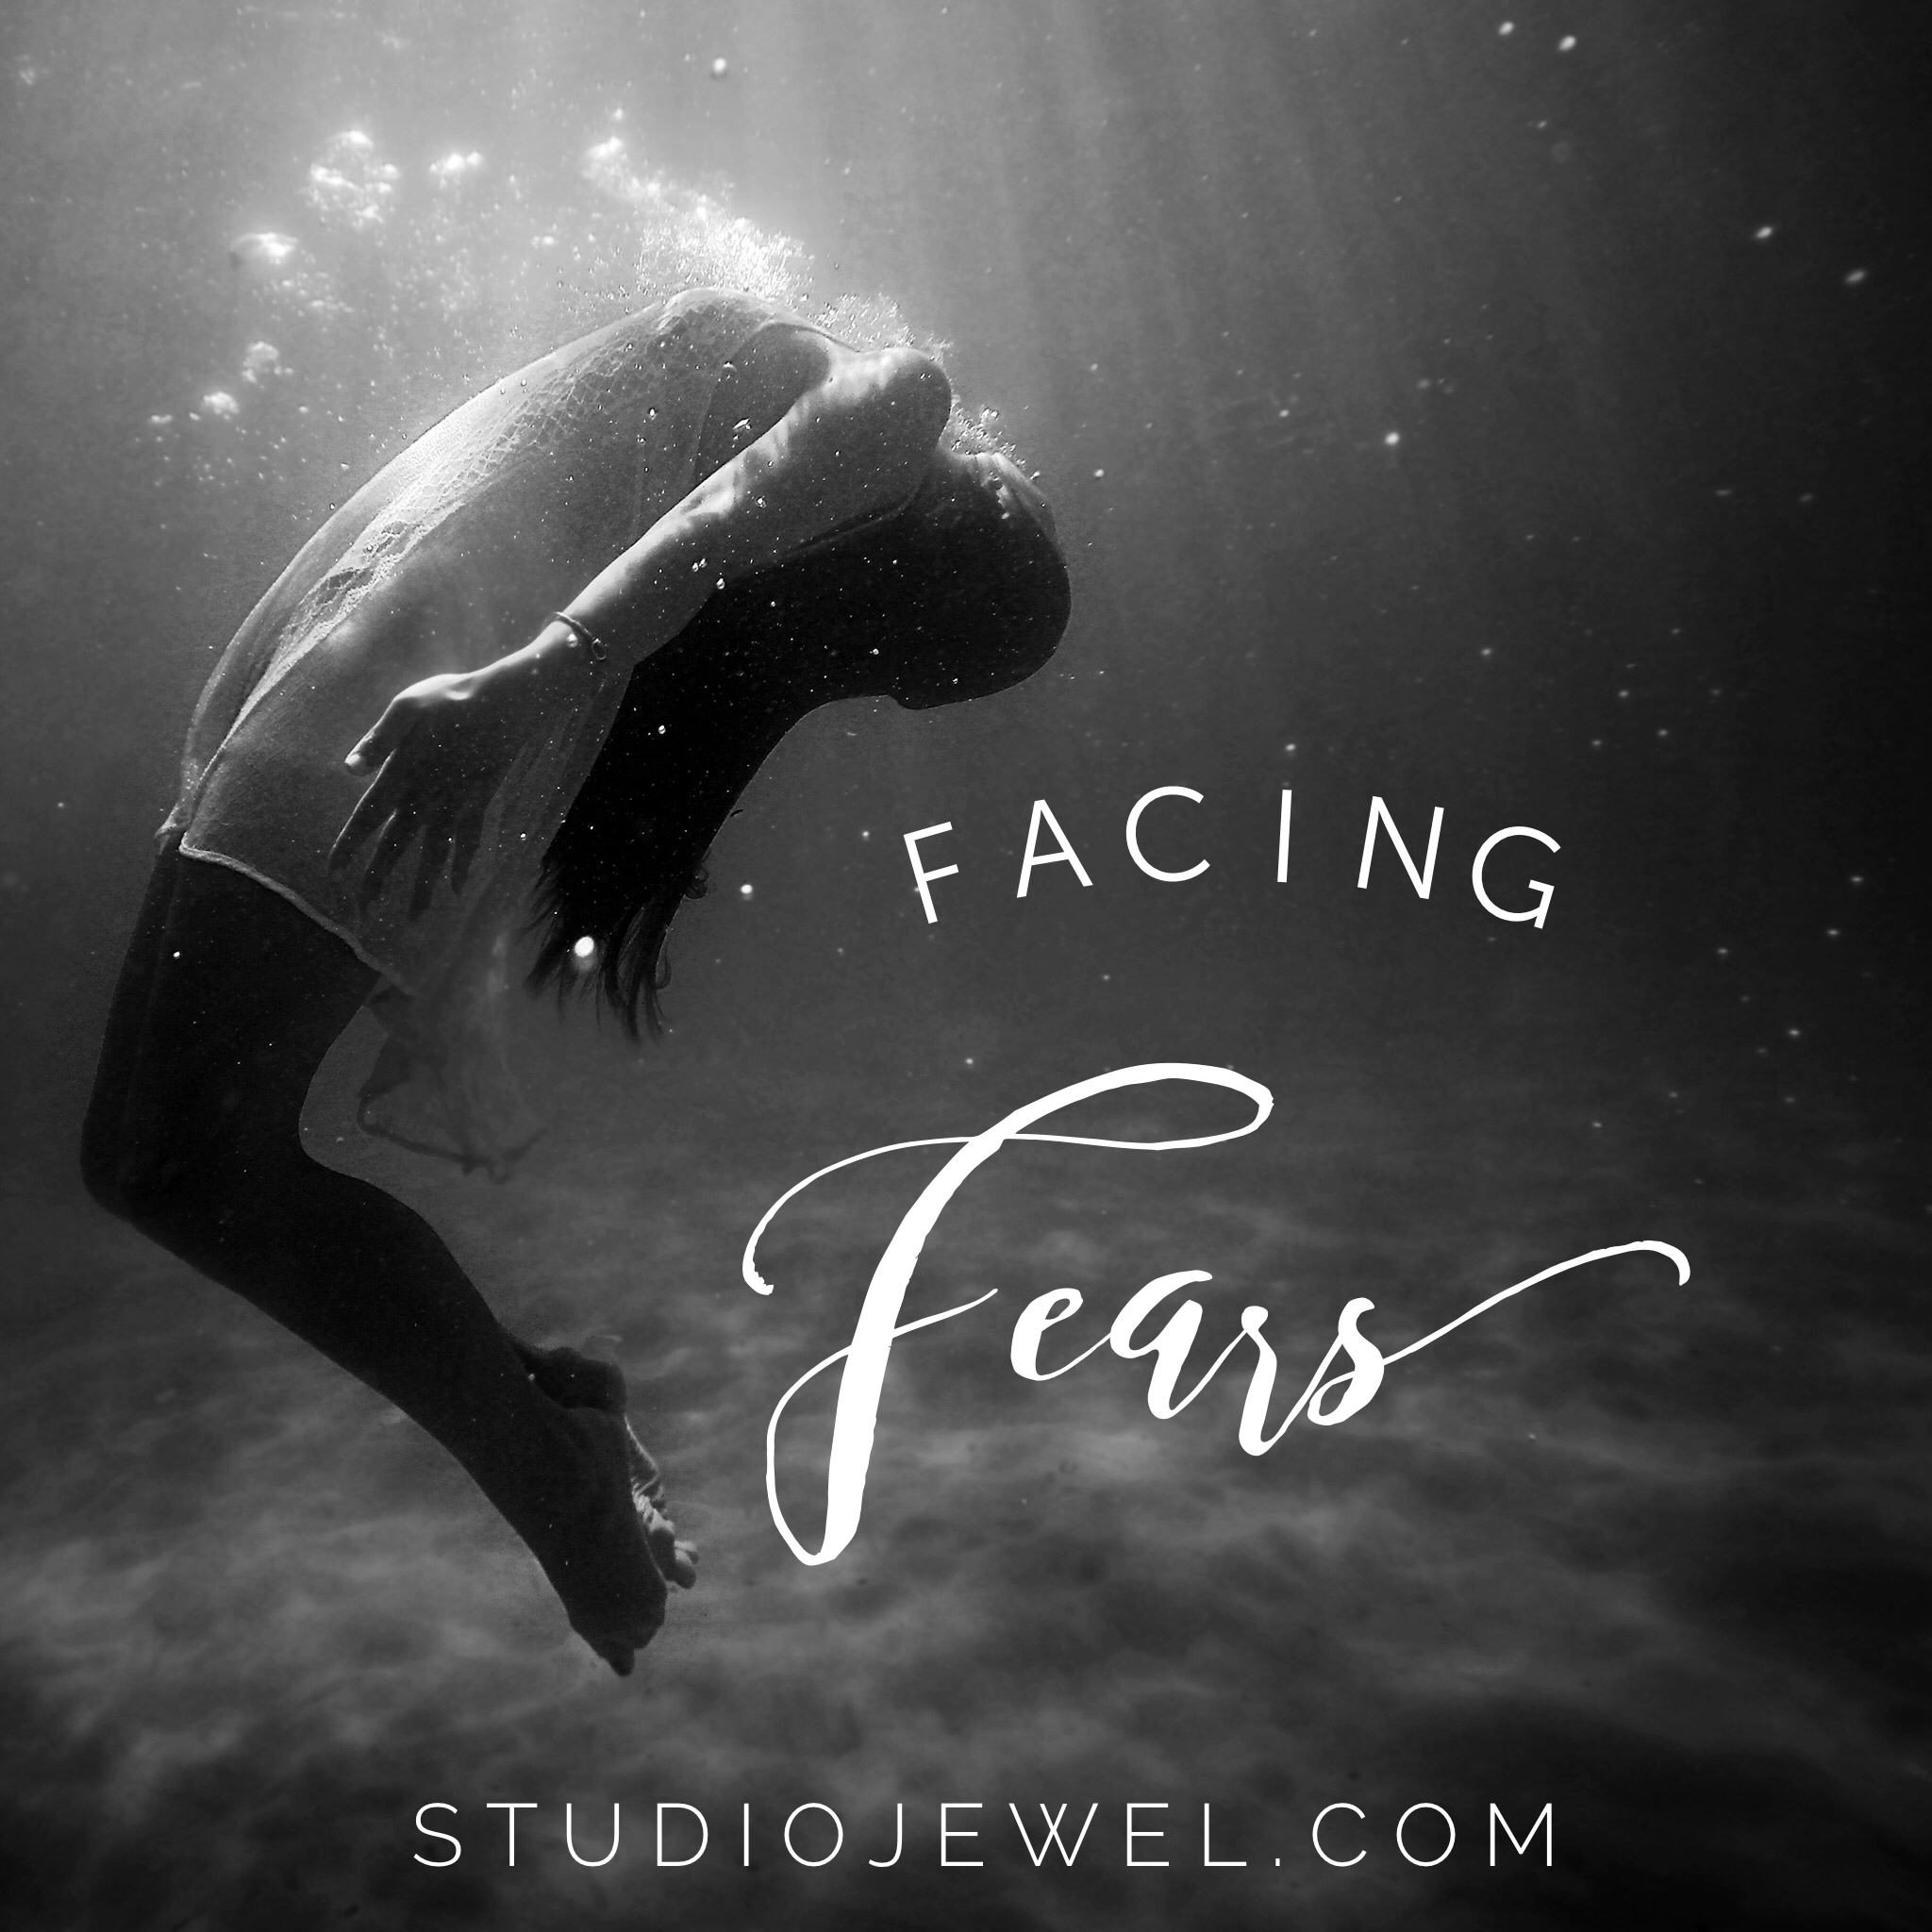 facing fear - Fear will trickle in unaware until it has taken up so much space you find yourself drowning when you didn't even realize you were swimming.